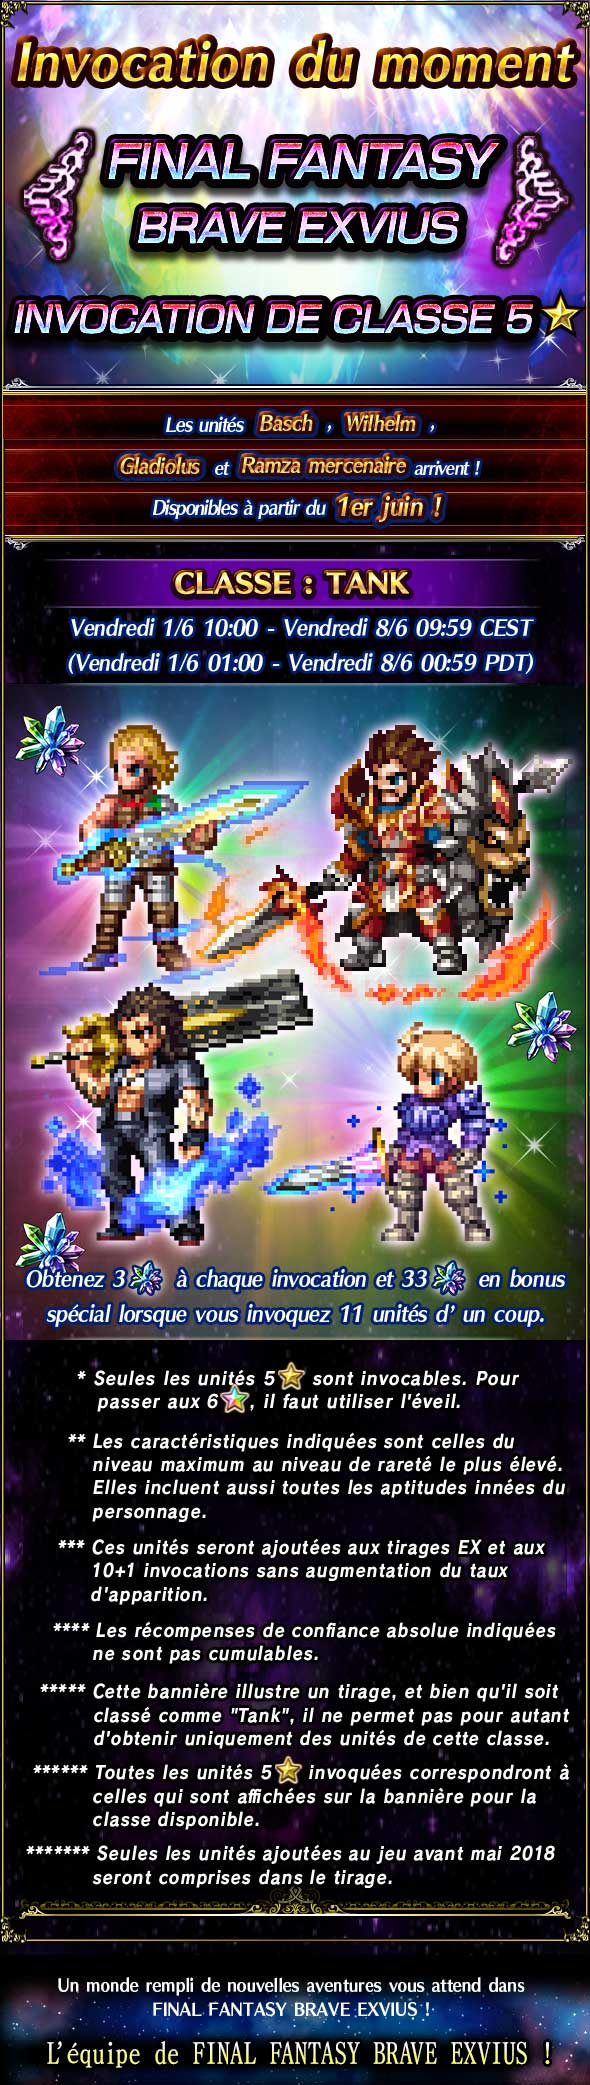 Invocations du moment - FFBE - Type Tank FFBE5starsTS